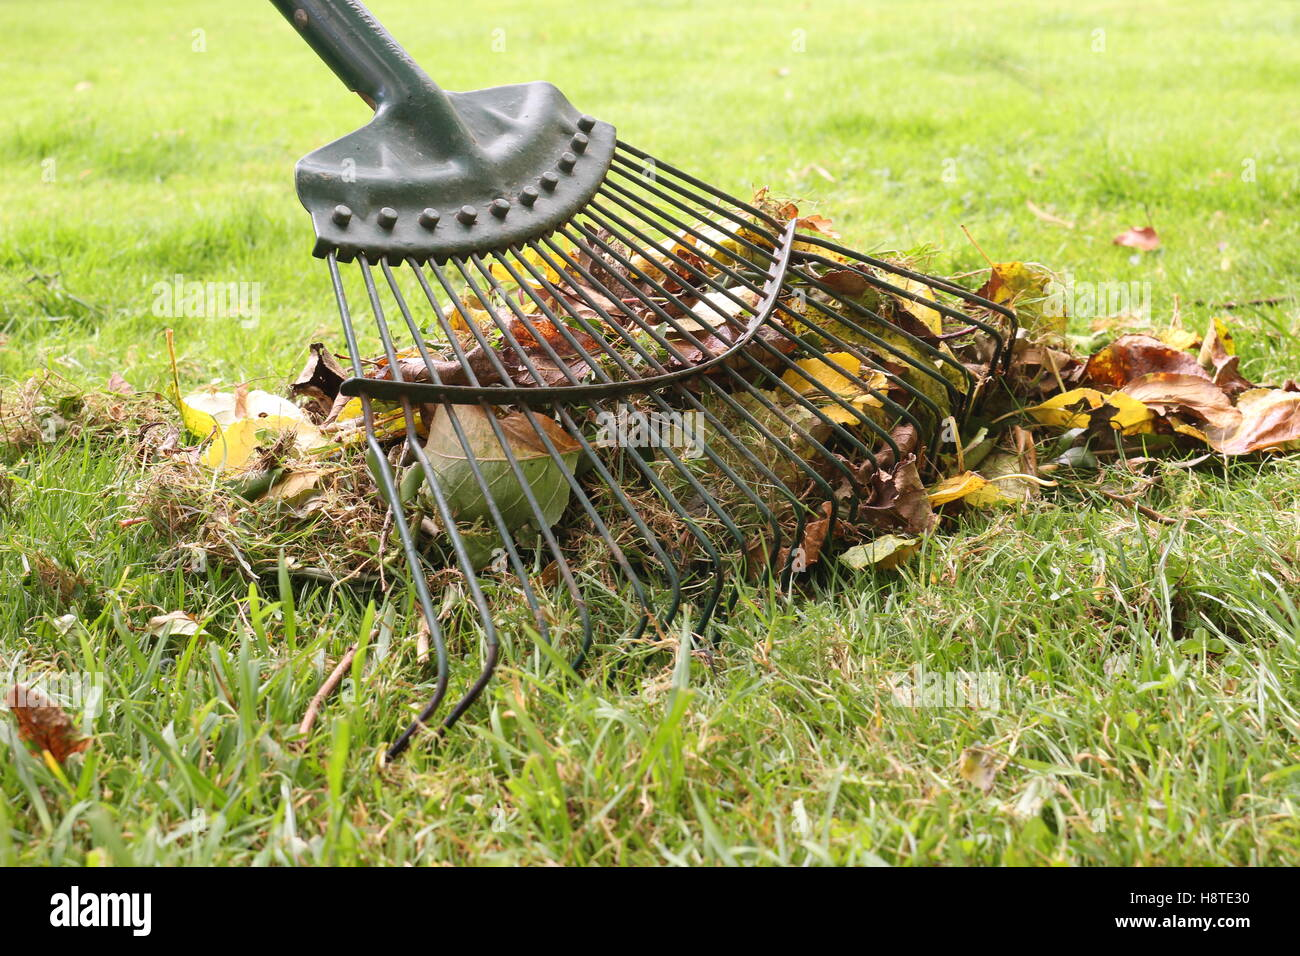 raking leaves - Stock Image